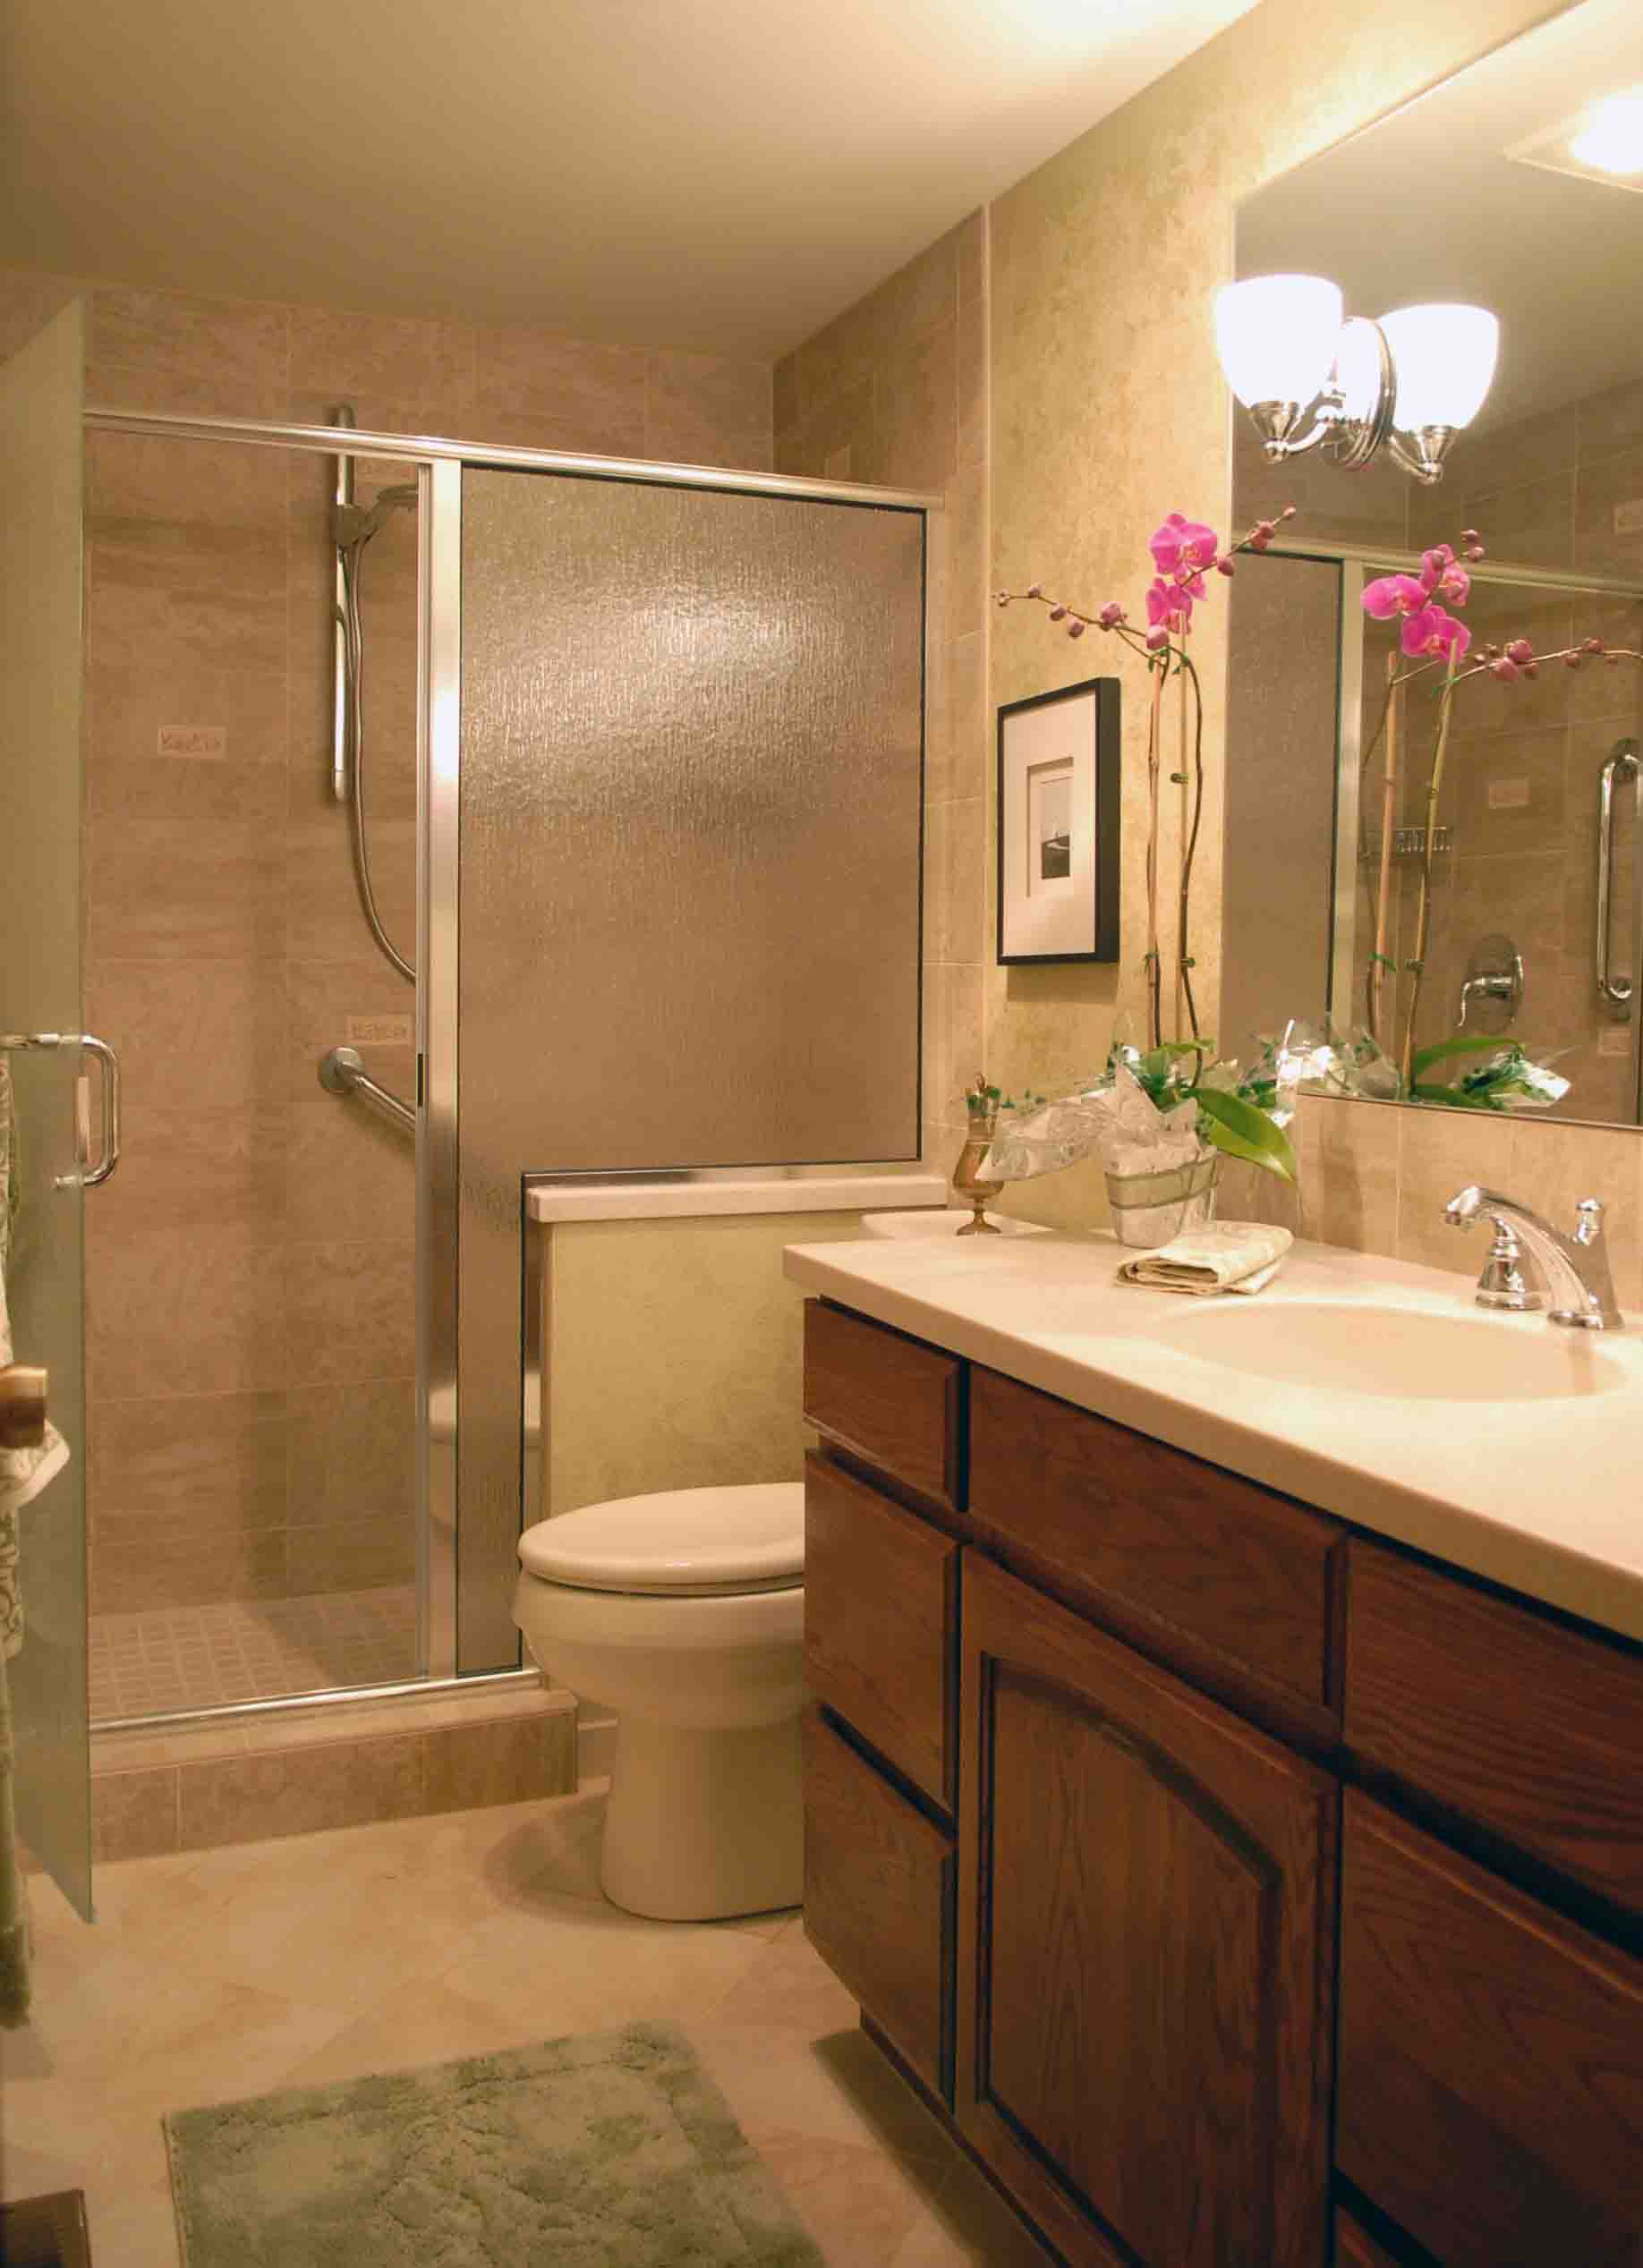 intercontinent Gorgeous Bathroom Decor to make your